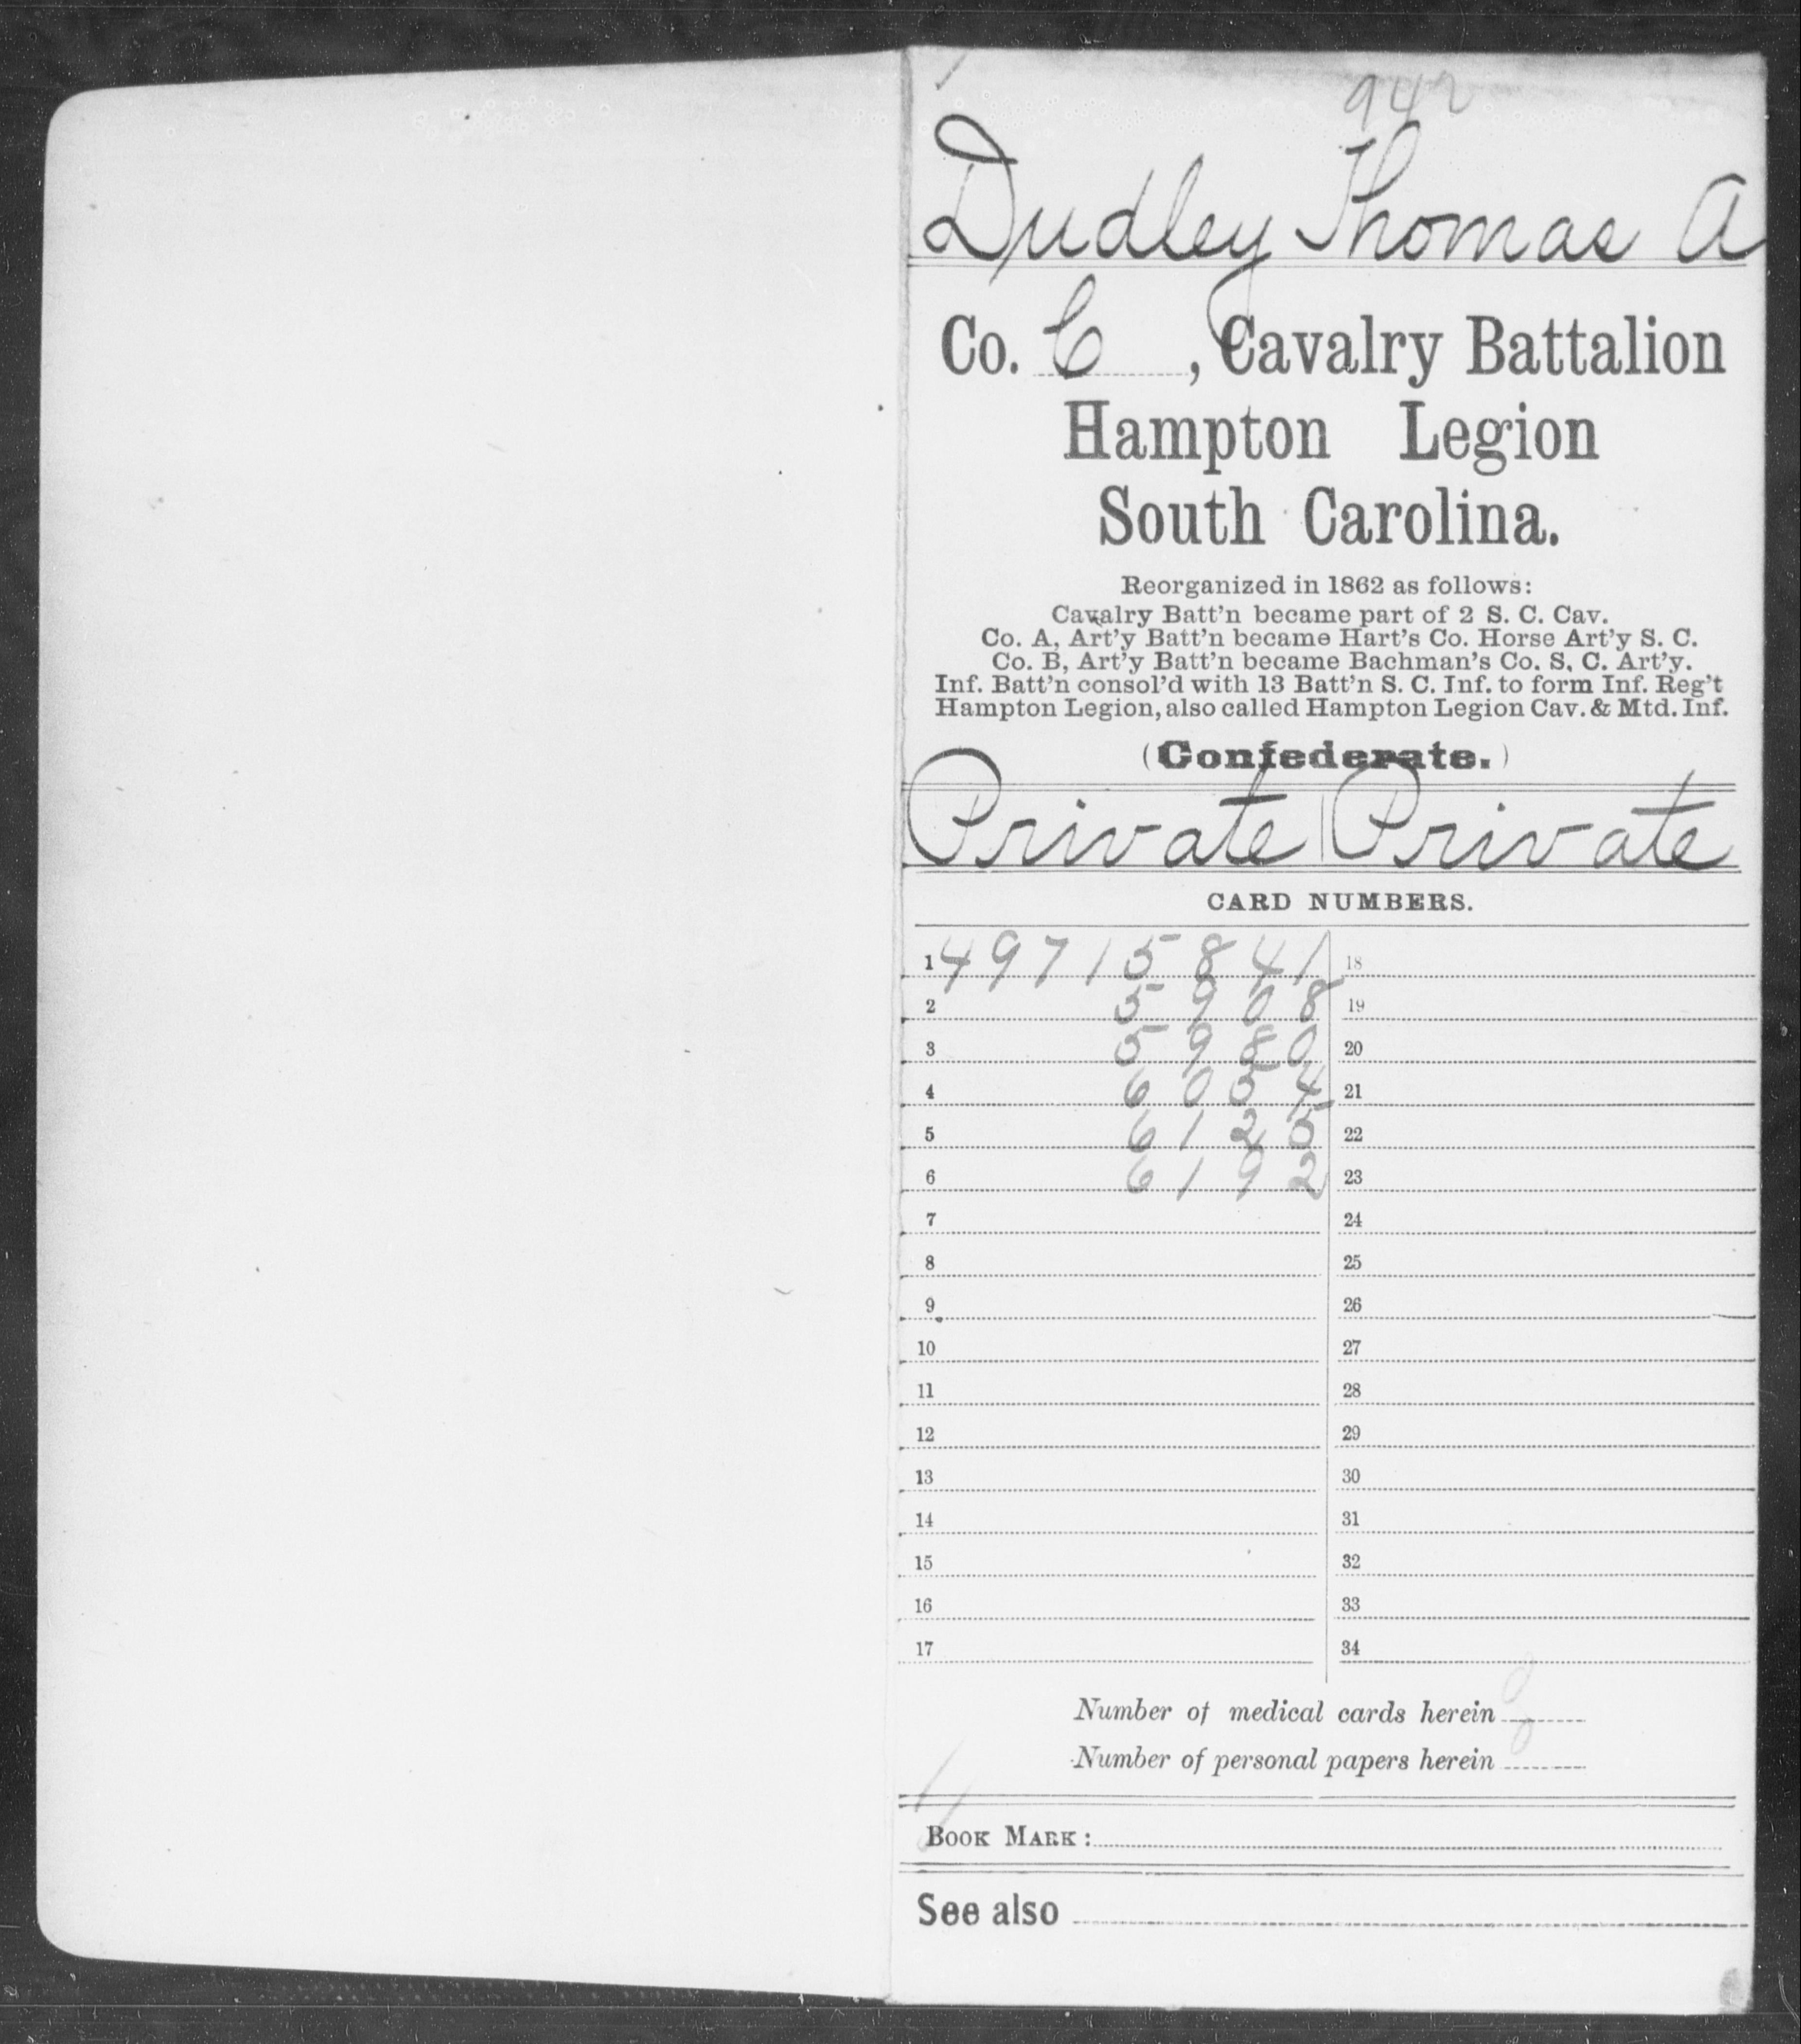 Confederate Soldiers from the State of South Carolina - Dudley, Thomas A - Hampton Legion Cl-D